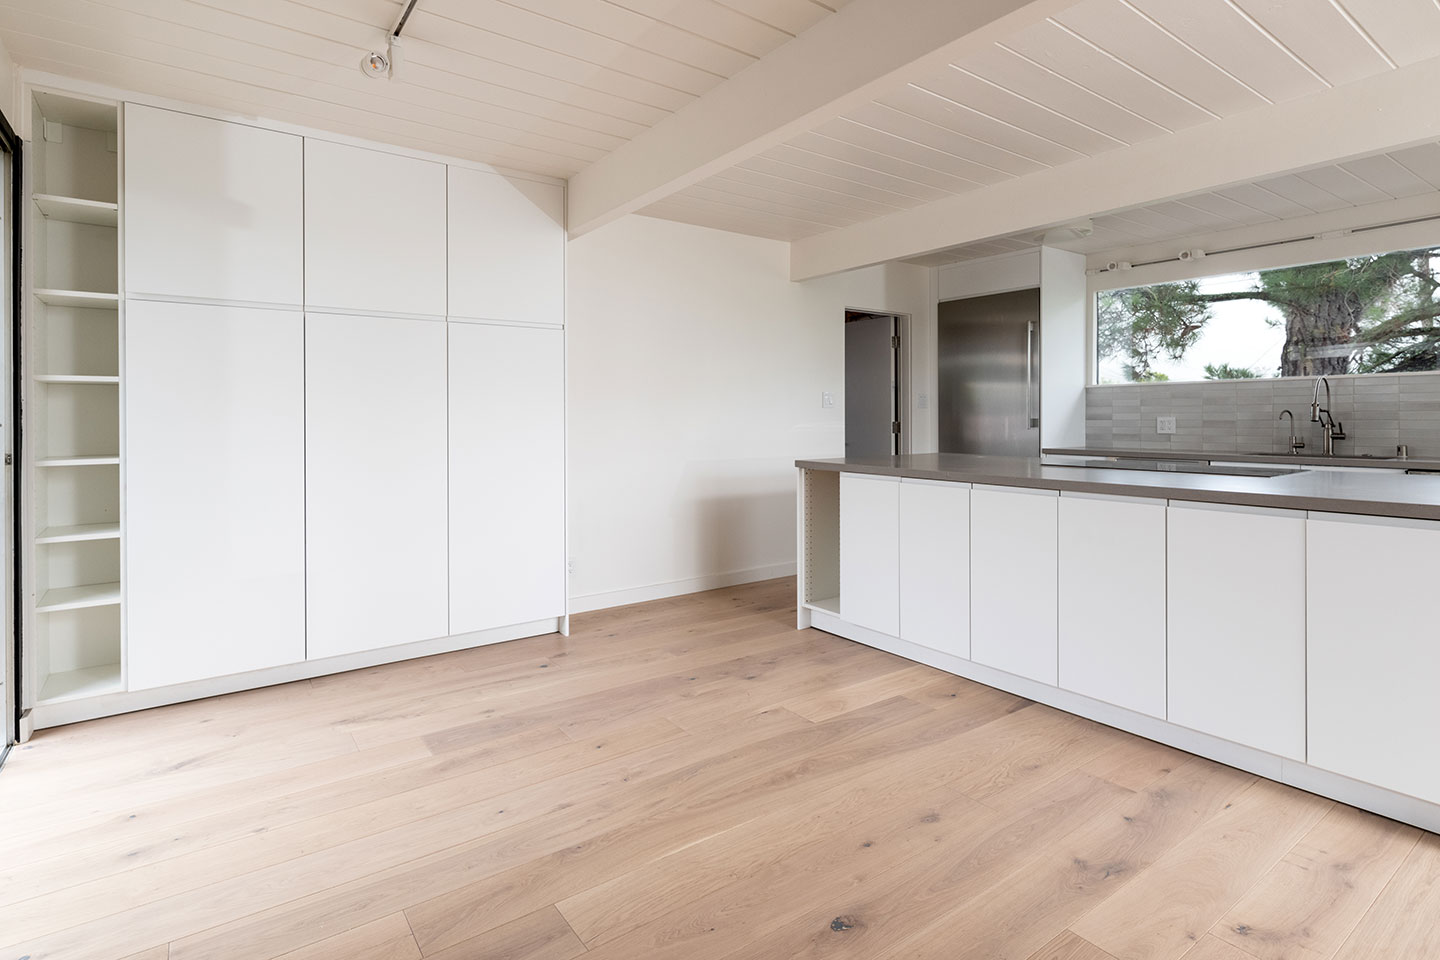 floor to ceiling kitchen cabinets with generous storage space